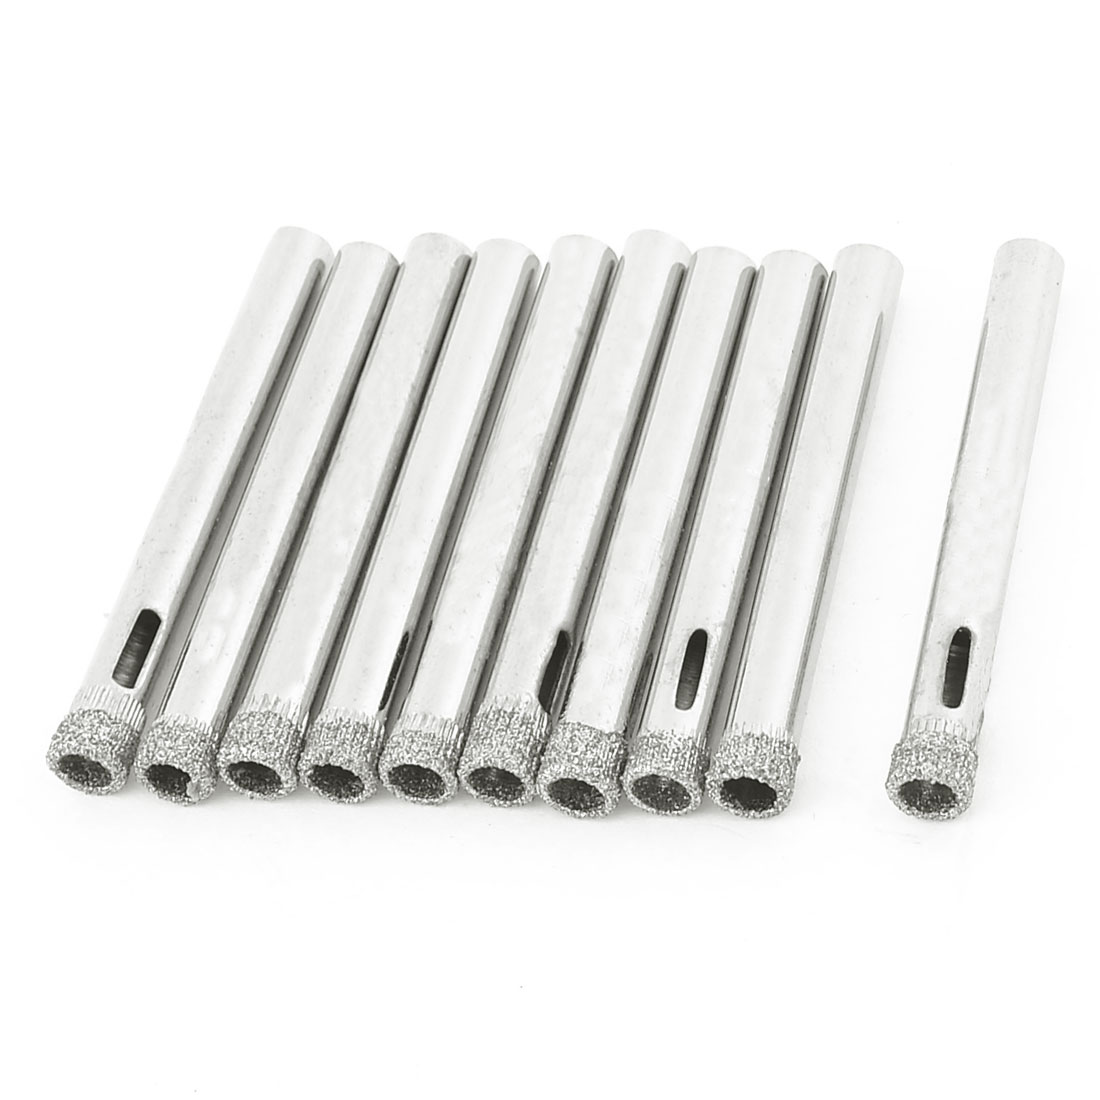 10 x 6mm Dia Diamond Coated Drill Bit Marble Tile Glass Hole Saw Silver Tone